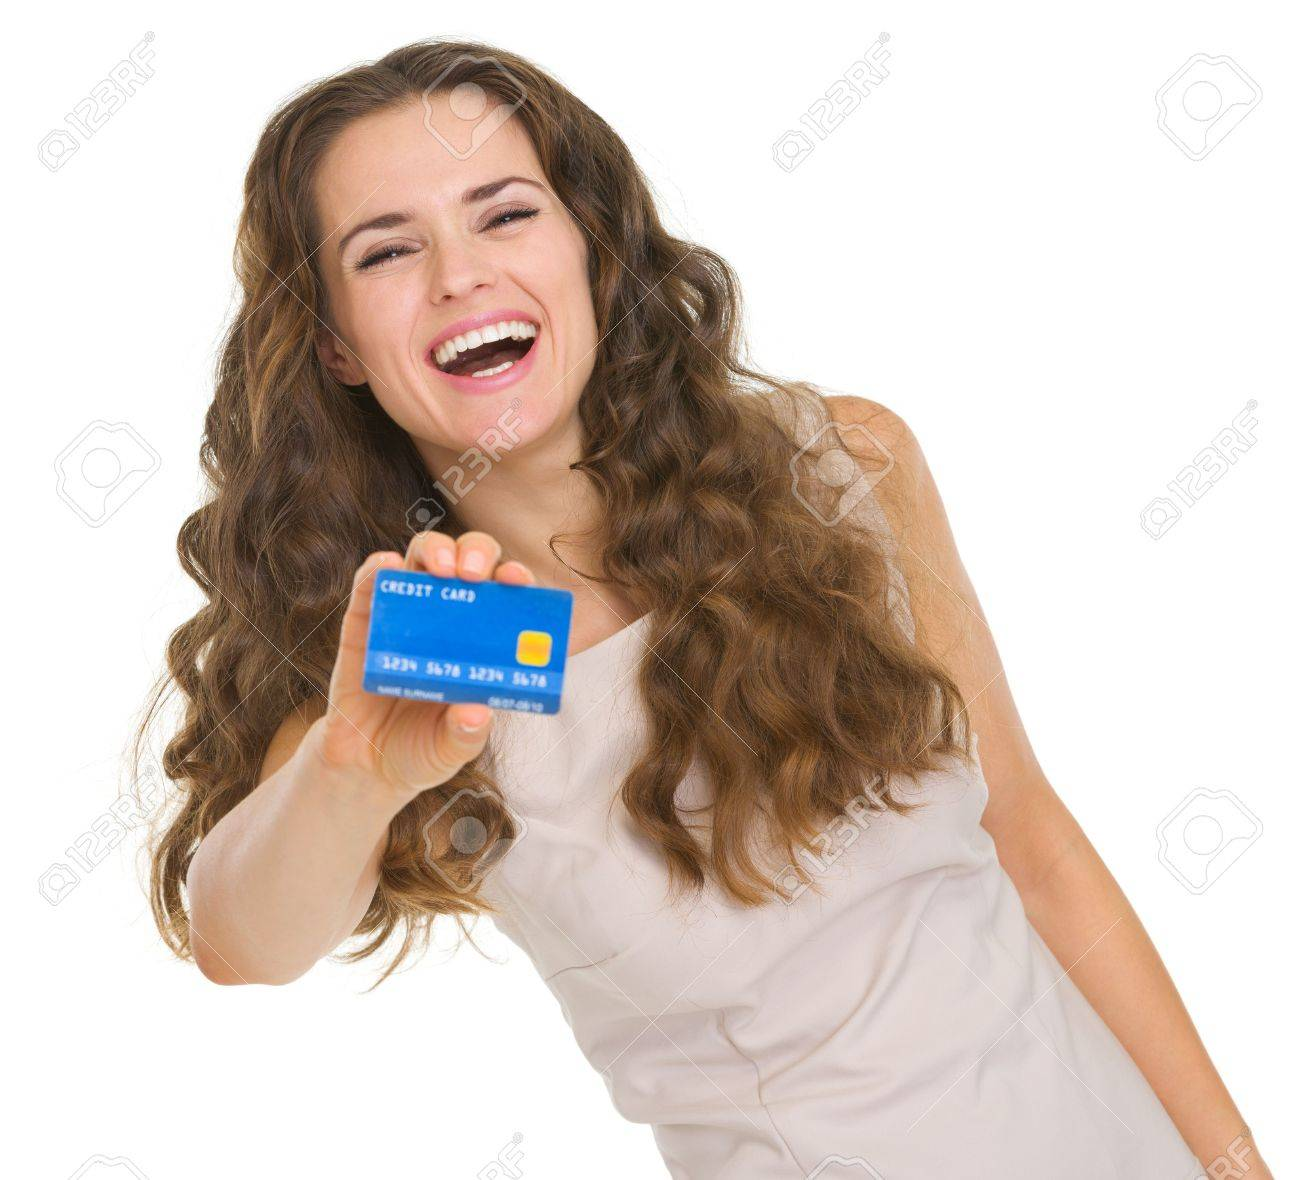 Portrait of happy young woman showing credit card Stock Photo - 18788132